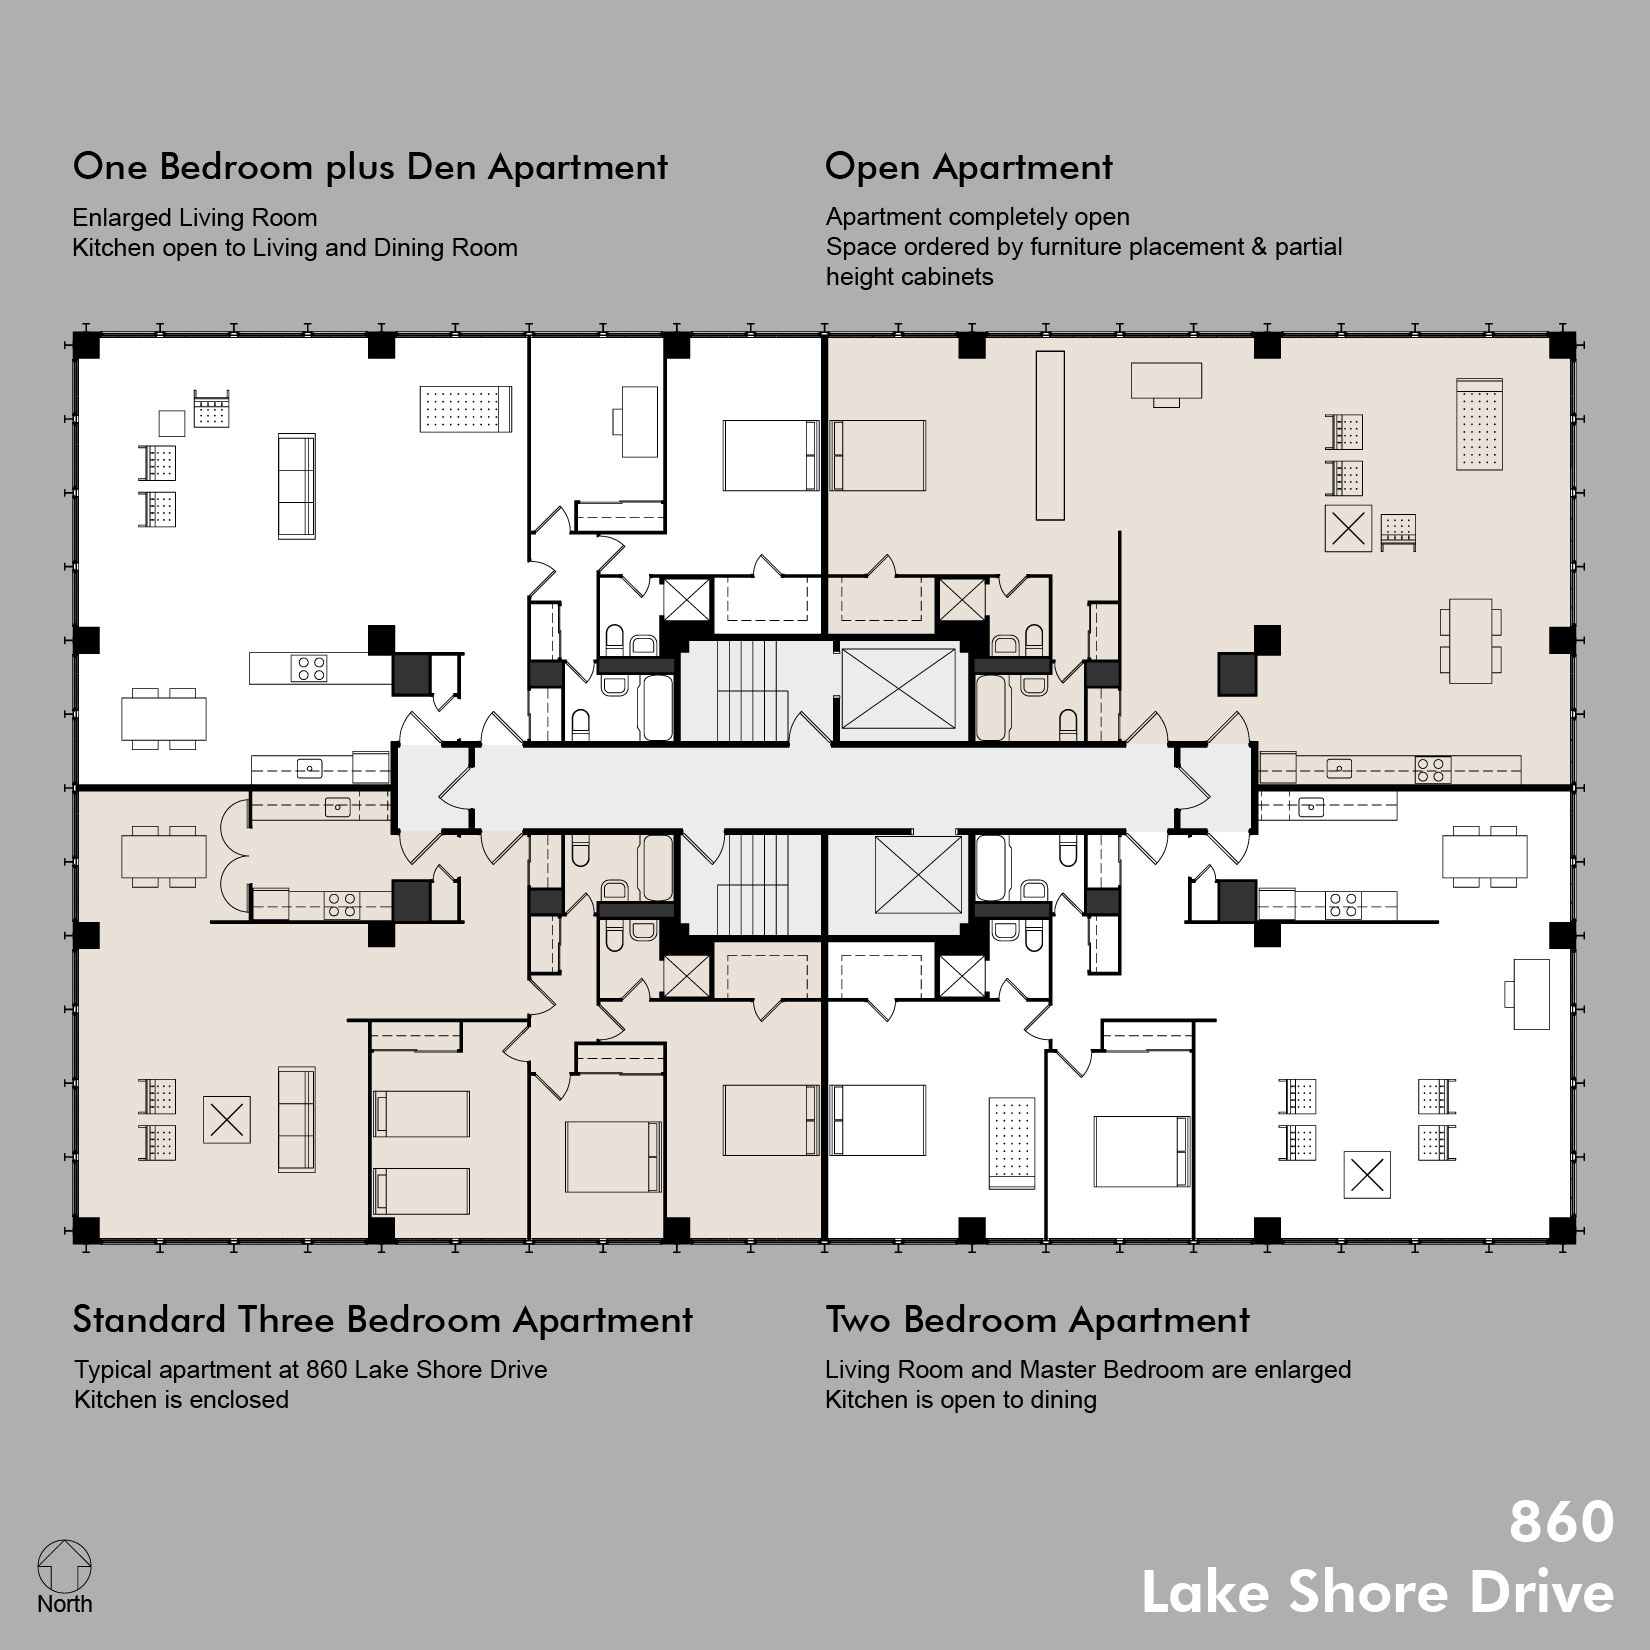 860 floor plans including standard apt